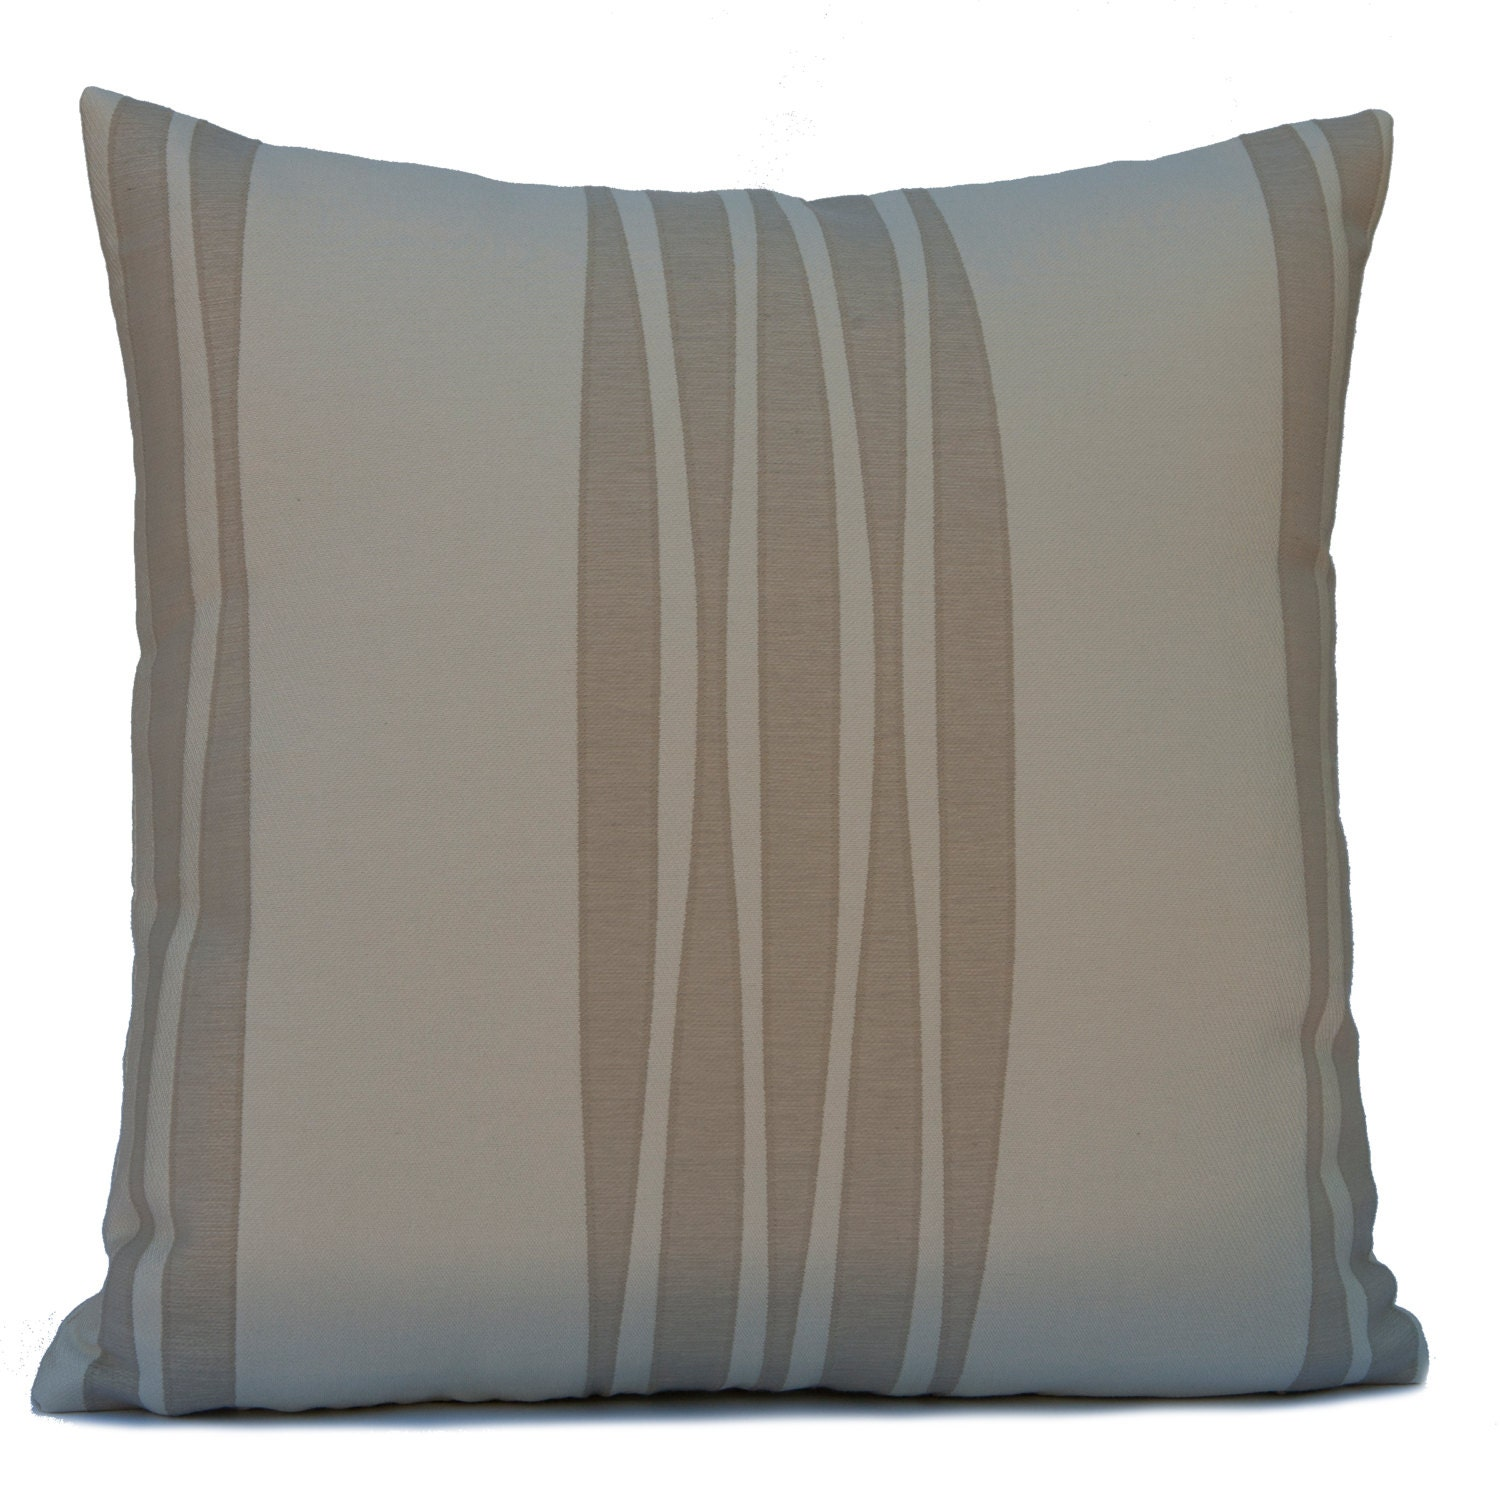 Decorative Pillows Beige : Ivory and Beige Pillow Throw Pillow Cover Decorative Pillow